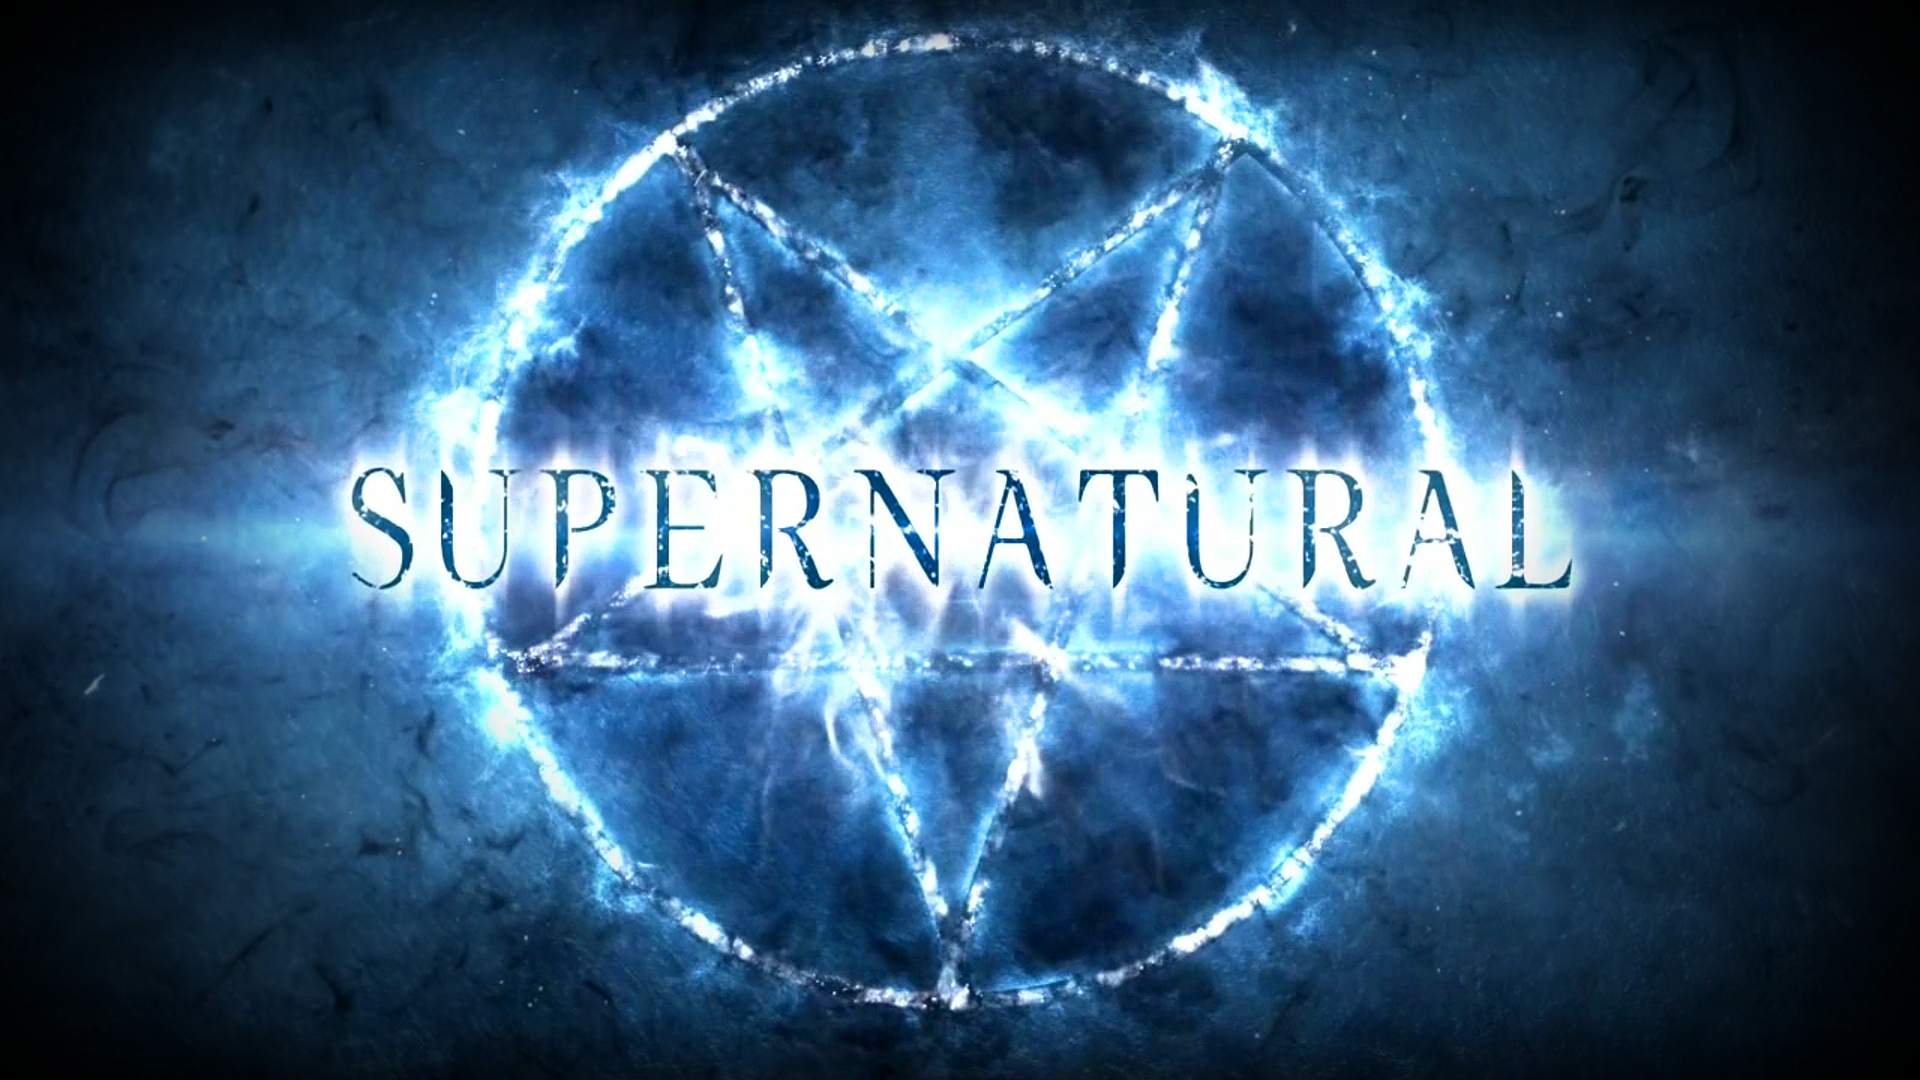 4k Ultra Supernatural HD Quality Wallpapers